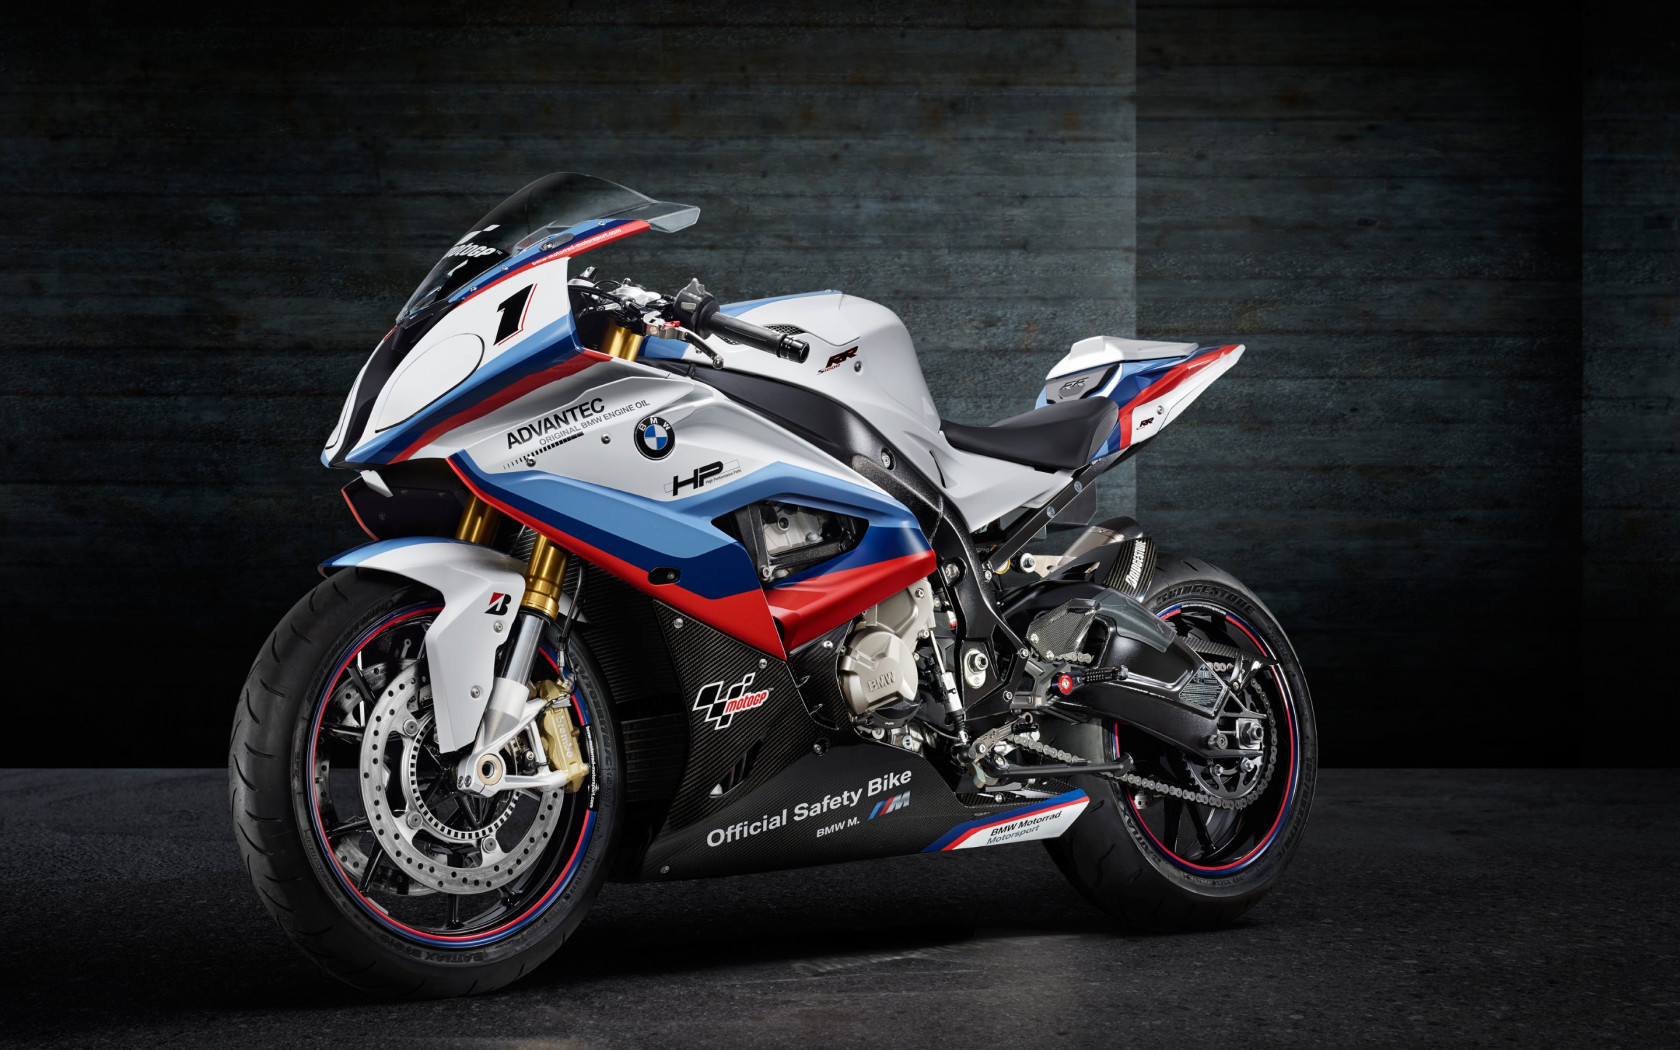 BMW S1000RR MotoGP Safety Motorcycle | 1680x1050 wallpaper